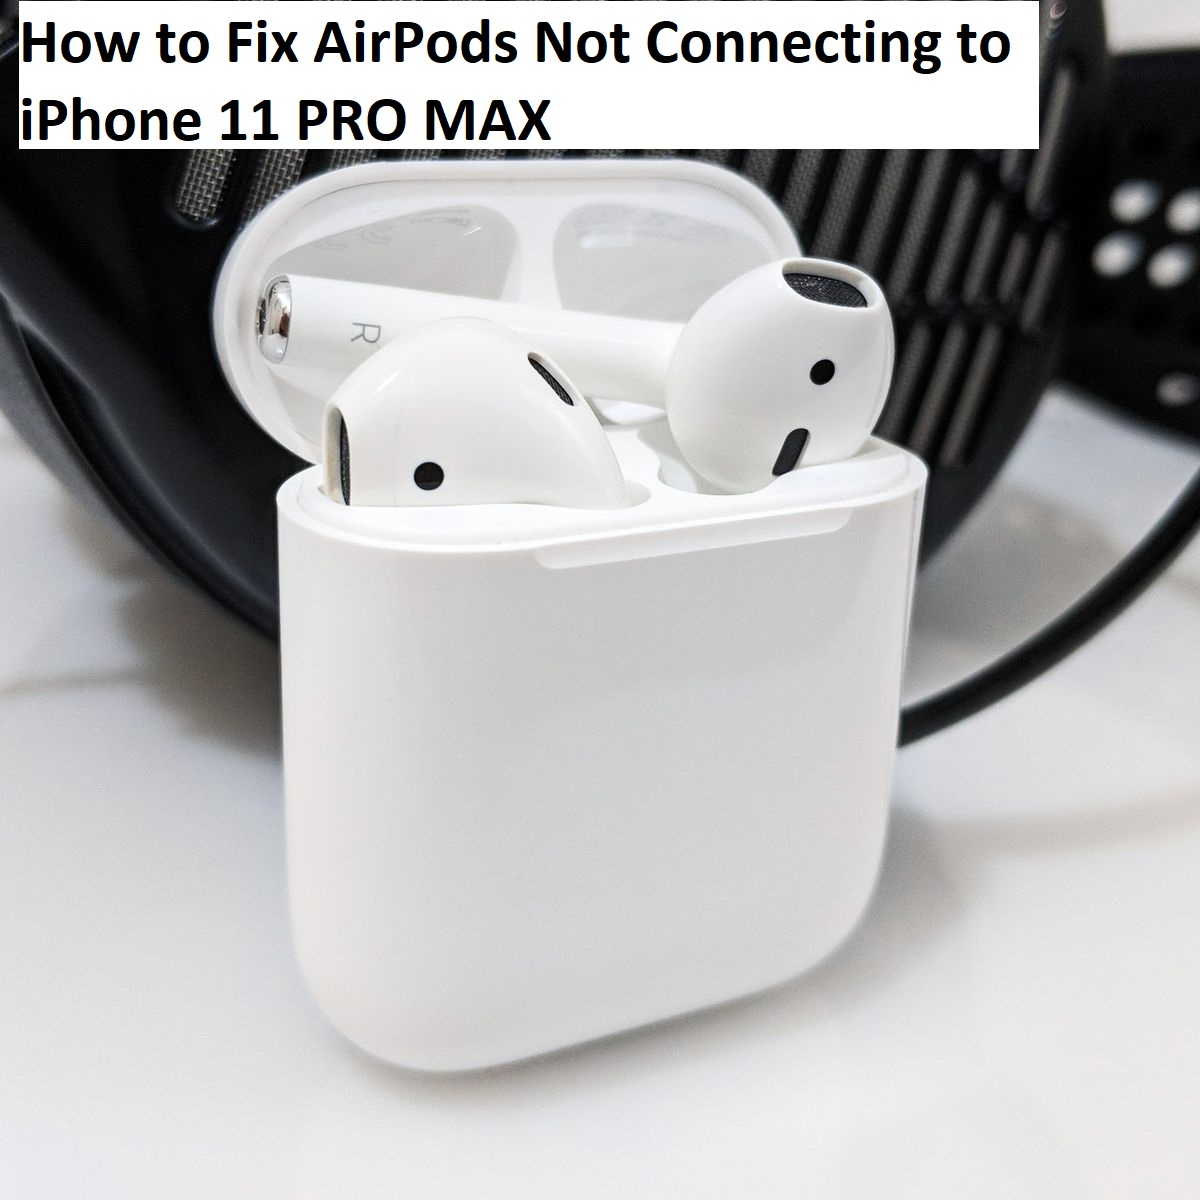 How to Fix AirPods Not Connecting to iPhone 11 PRO MAX